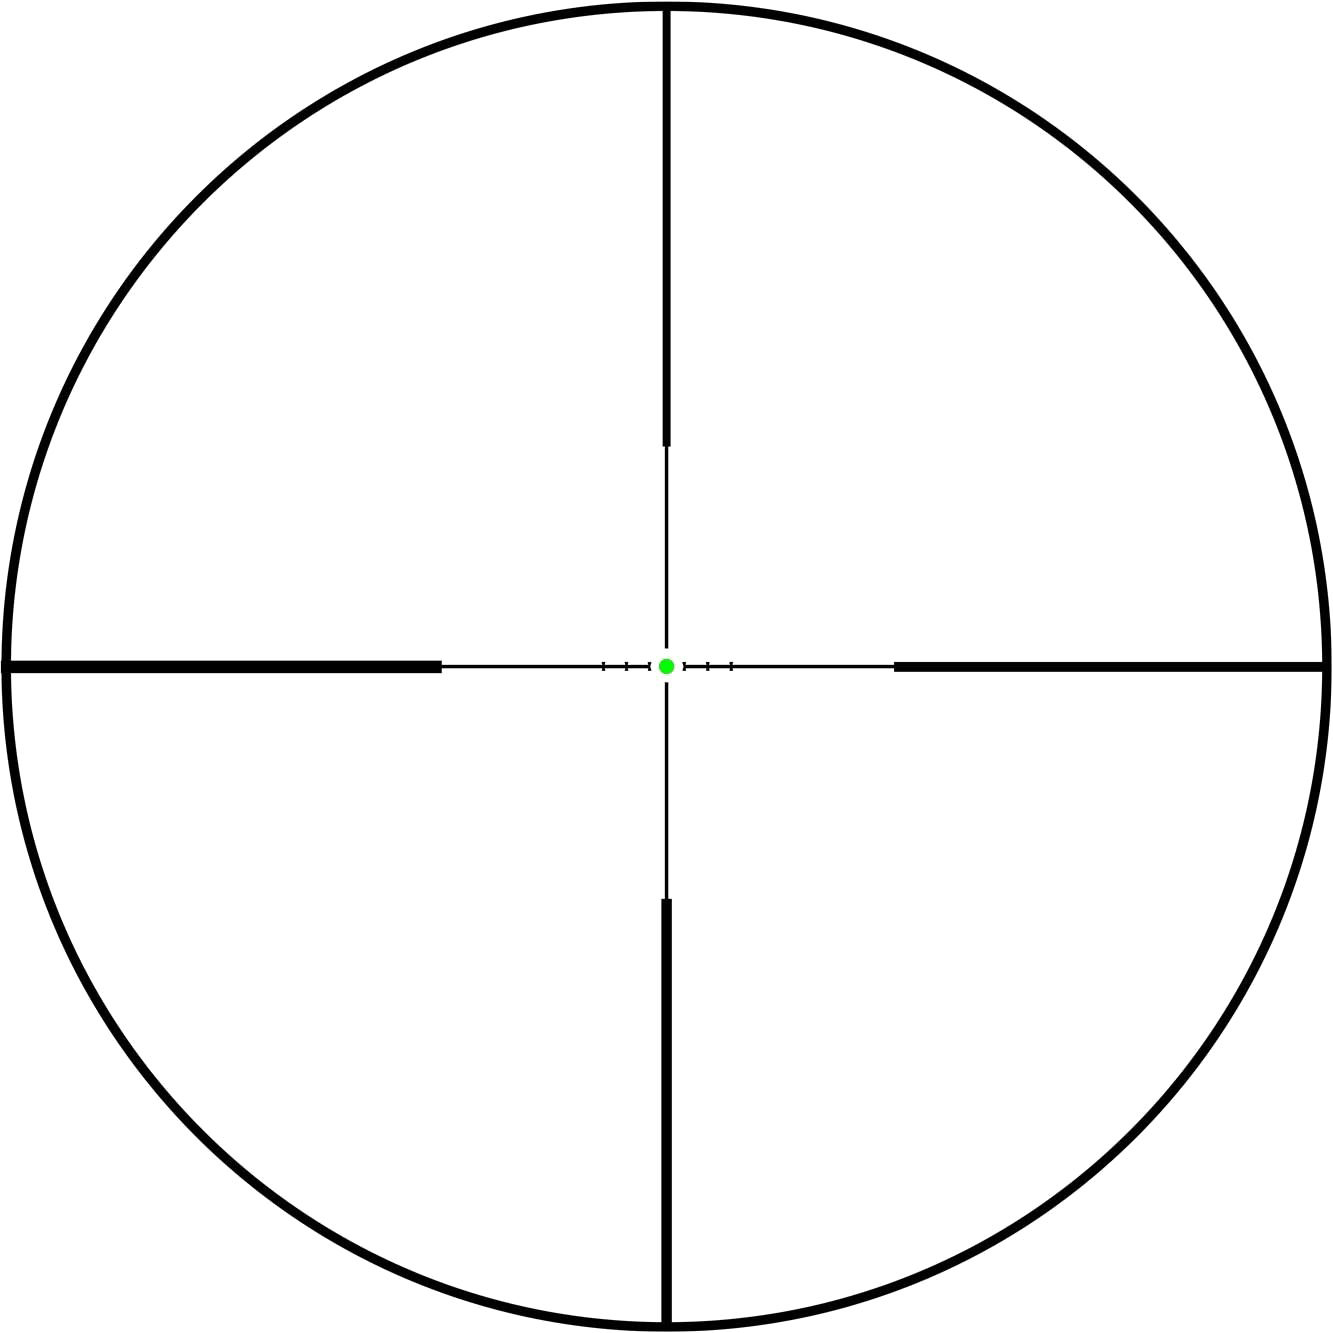 Scope PNG Images Transparent Free Download.